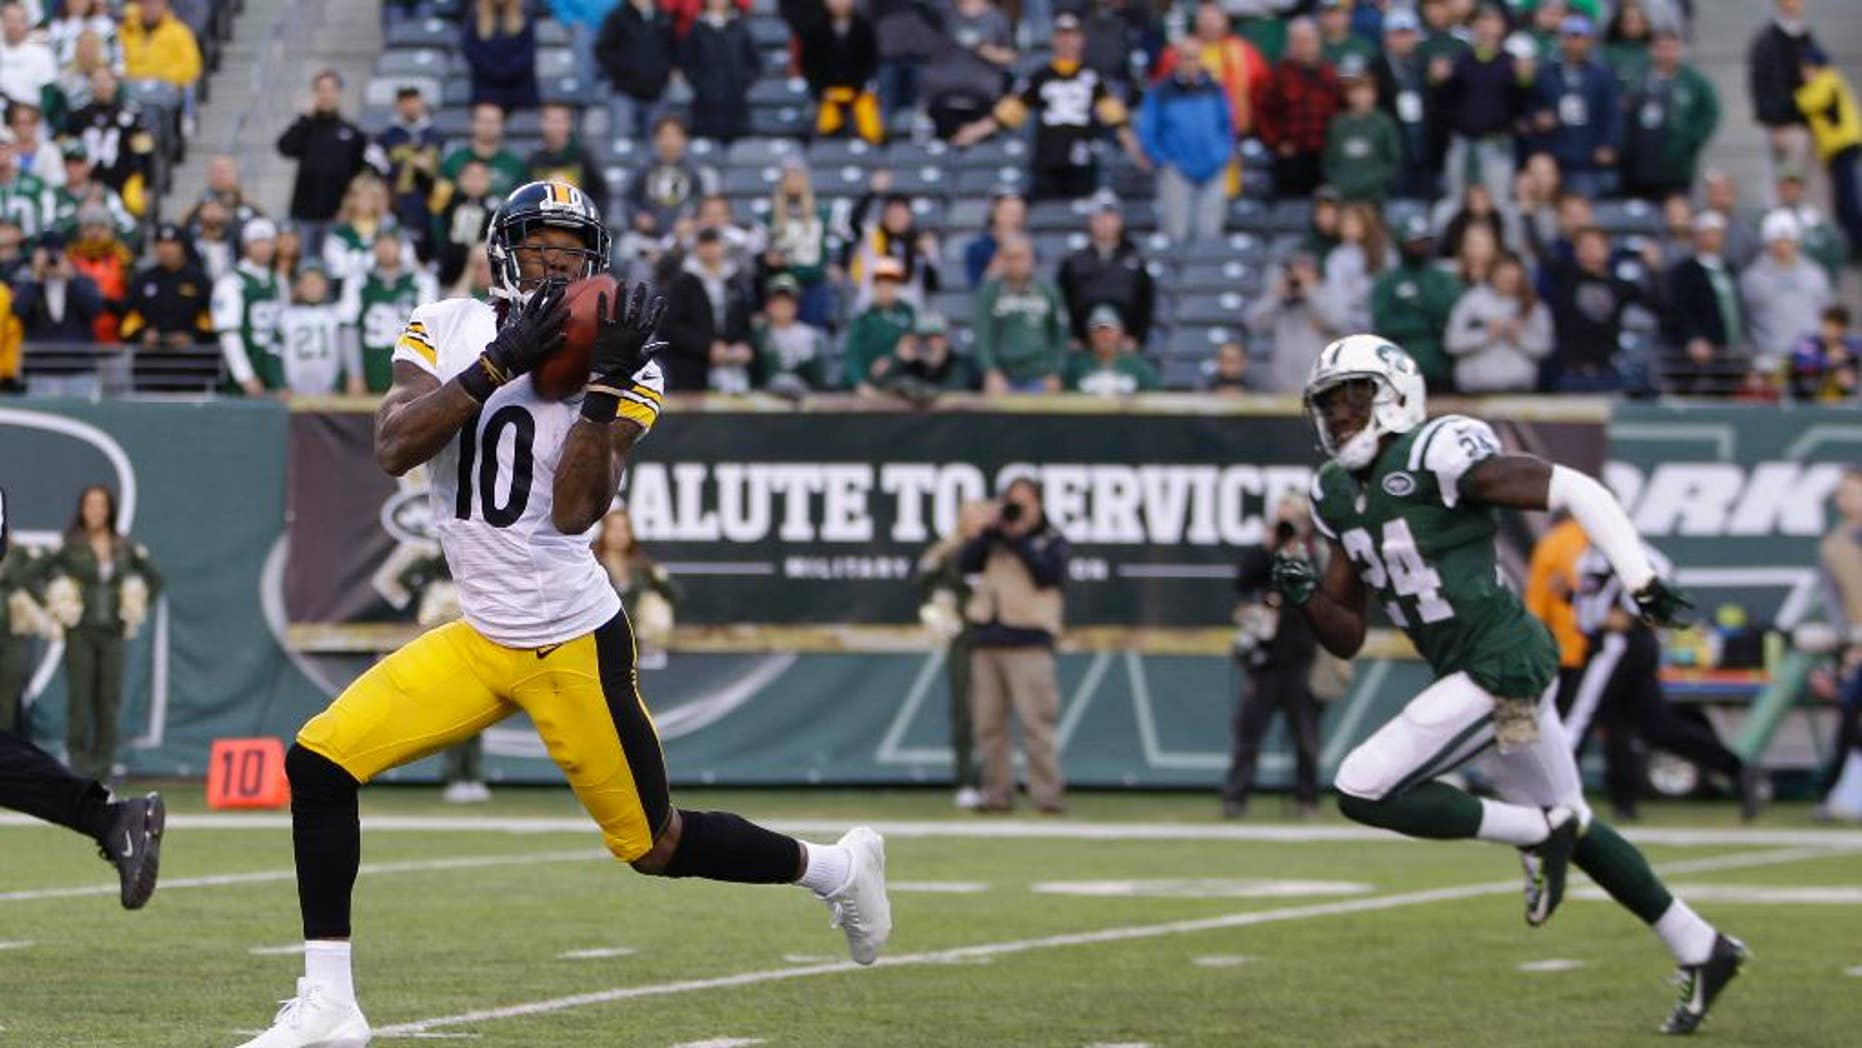 Pittsburgh Steelers wide receiver Martavis Bryant (10) catches a pass for in front of Phillip Adams (24) during the second half of an NFL football game, Sunday, Nov. 9, 2014, in East Rutherford, N.J. Bryant scored a touchdown on the play. (AP Photo/Kathy Willens)